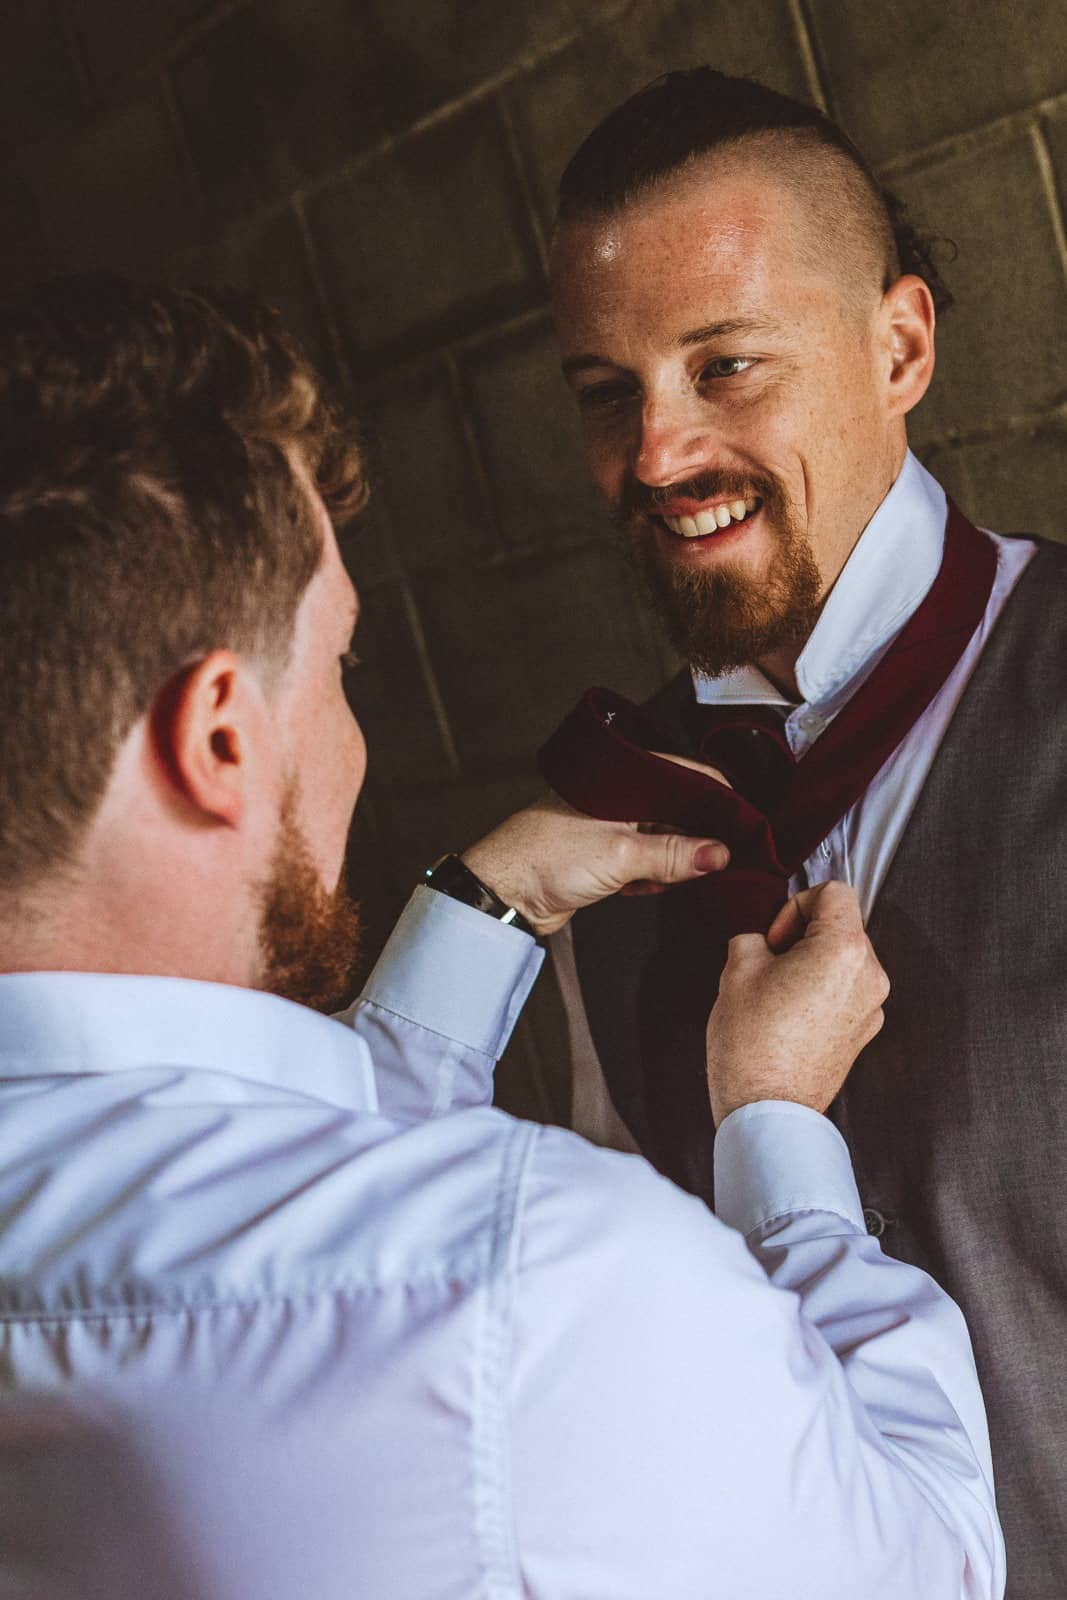 Groom getting help with tie